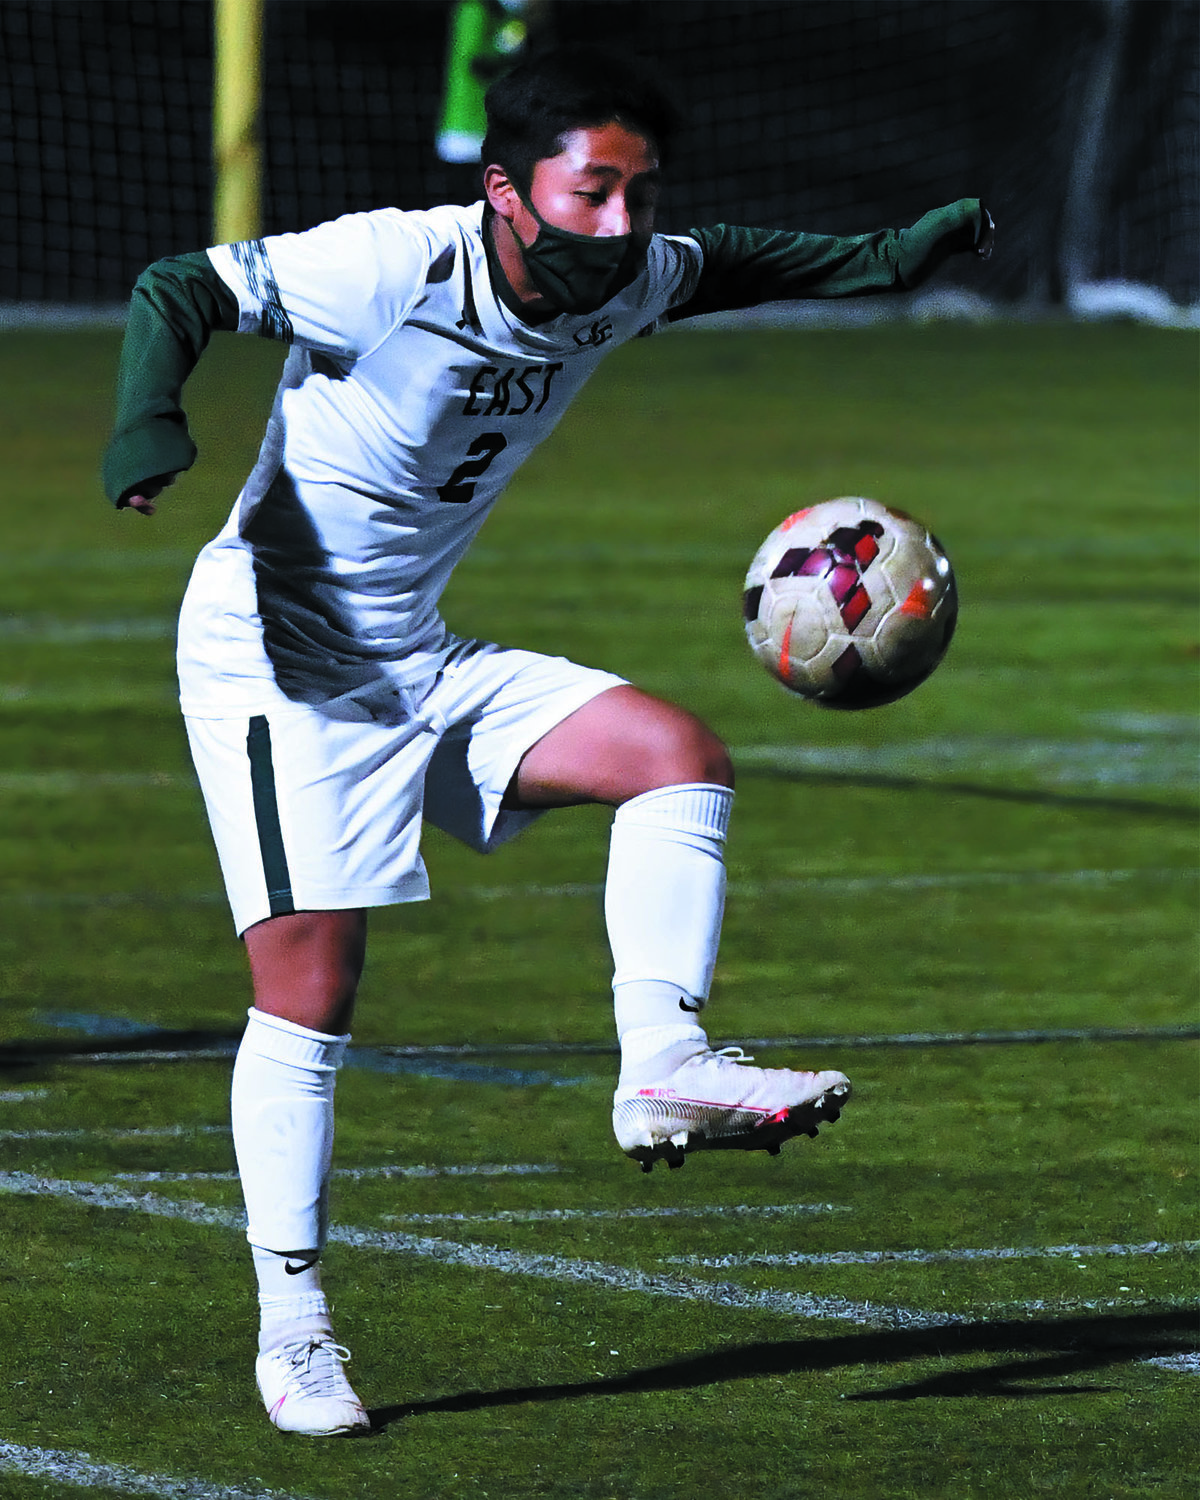 PLAYOFF SOCCER: Cranston East's Michael Lopez juggles the ball in the Division II Quarterfinals against East Greenwich on Monday night. The Thunderbolts fell to the Avengers 3-0. East finished the season with a 4-1-4 league record. Meanwhile, the Cranston West squad also fell in its quarterfinals matchup against Westerly, 4-3.